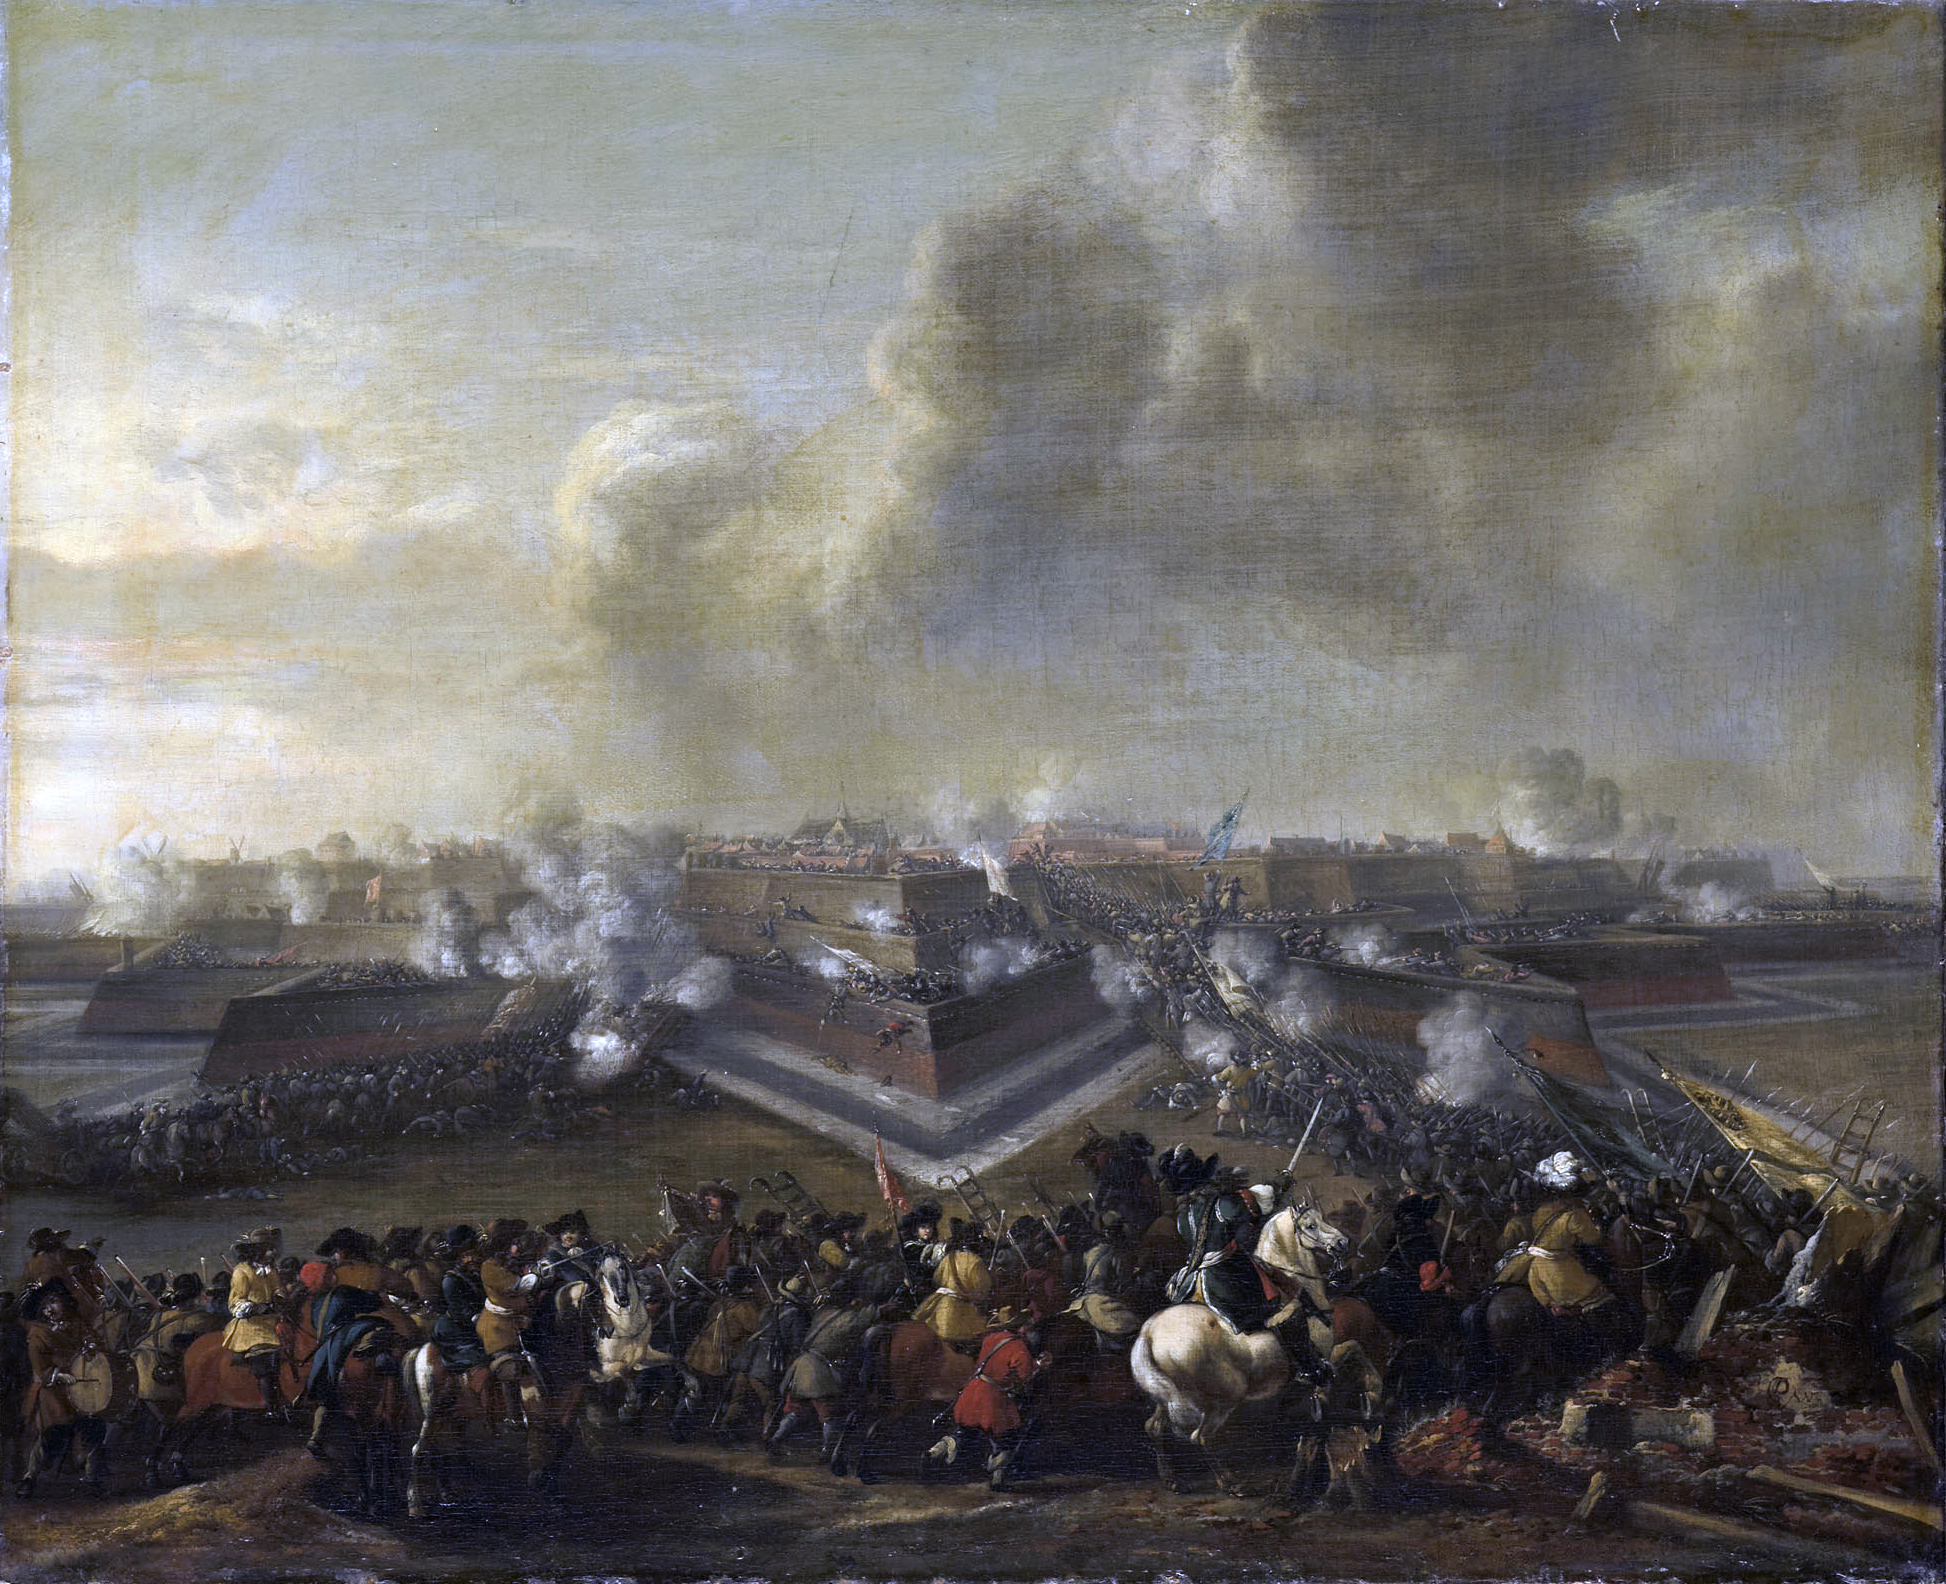 File:Assault on Coevorden in 1672 - De bestorming van Coevorden, 30  december 1672